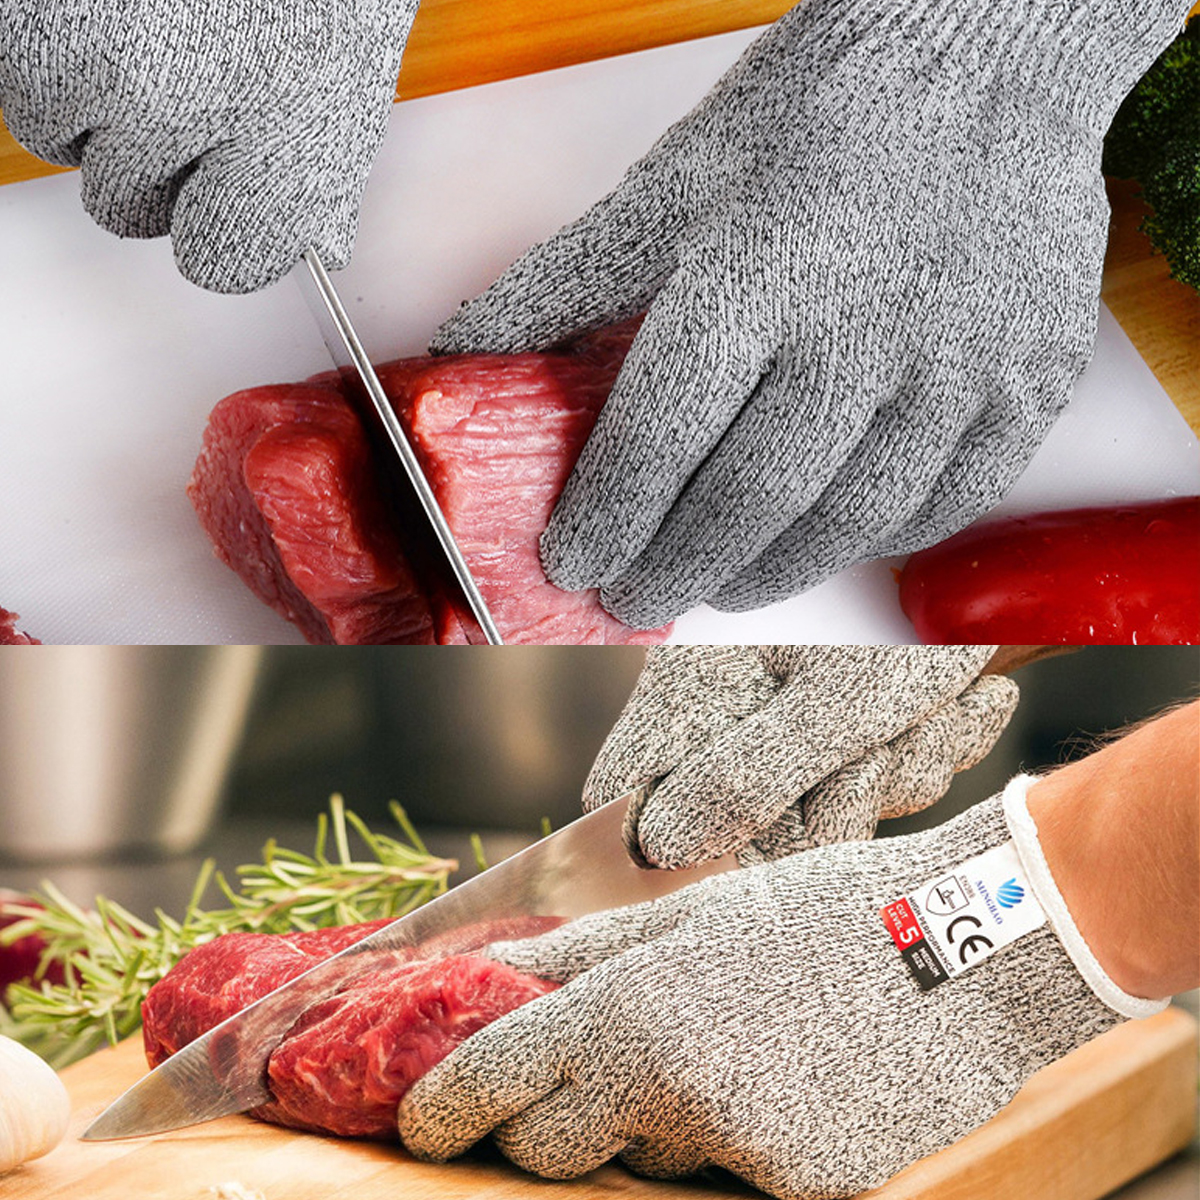 Stainless Steel Wire Metal Mesh Kitchen Safety Cut Proof Stab Resistant Anti-Cutting Gloves